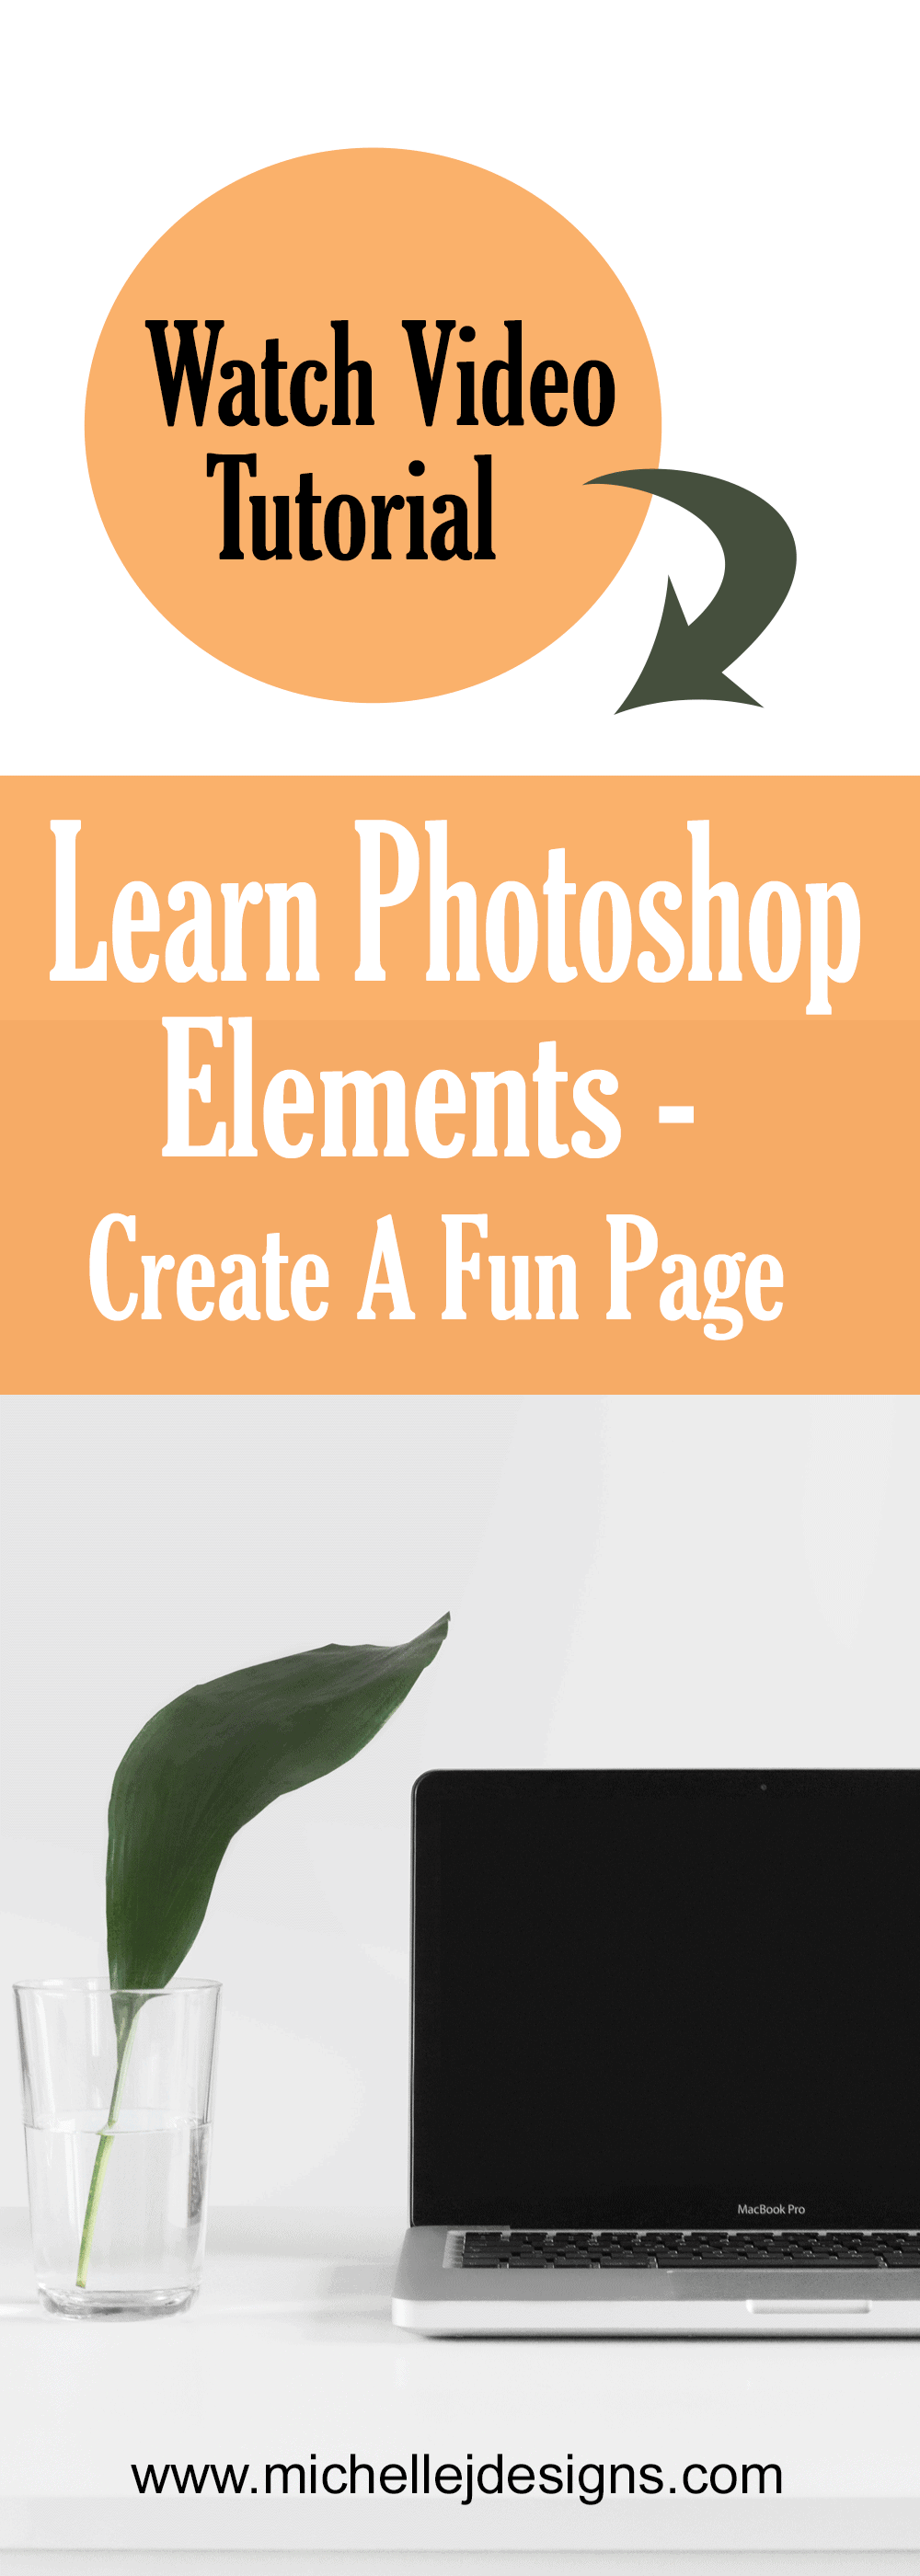 This a post including a video tutorial that covers bringing photos and elements into the program and adding text - Learn Photoshop Elements - www.michellejdesigns.com